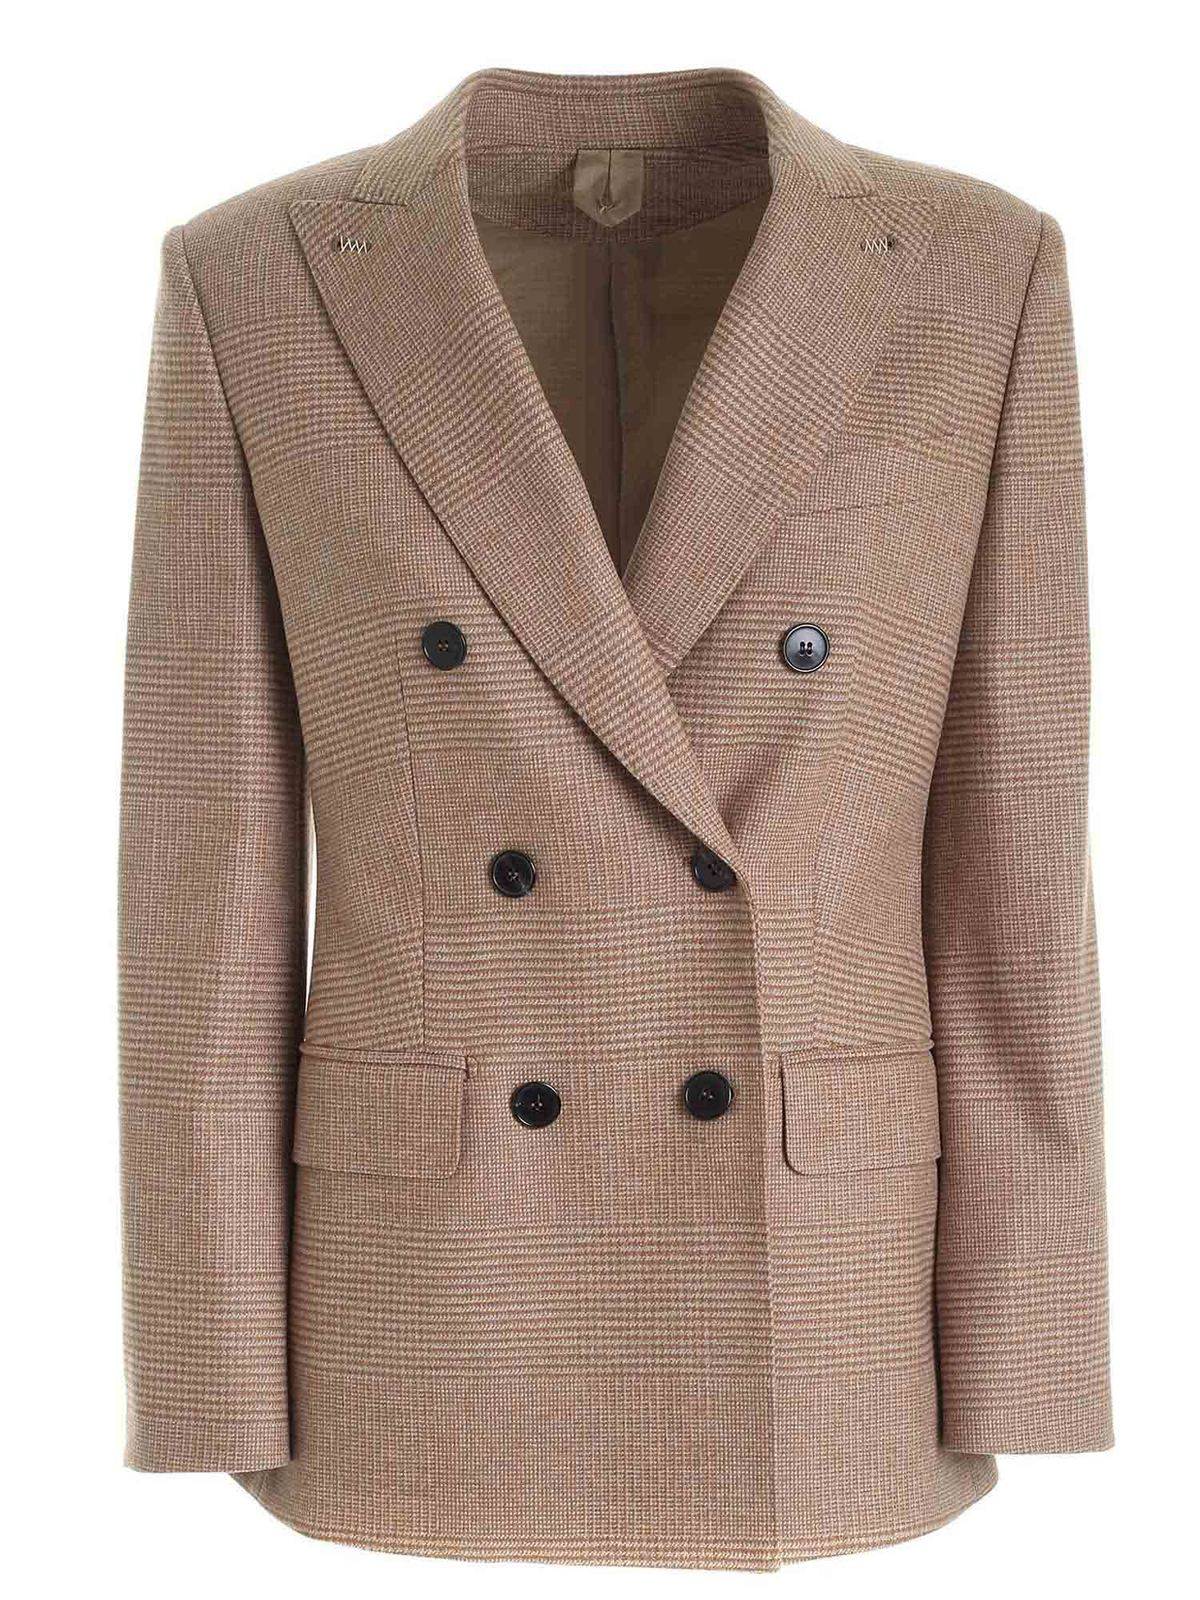 Max Mara Cashmeres JUDY JACKET IN SHADES OF BROWN AND CAMEL COLO